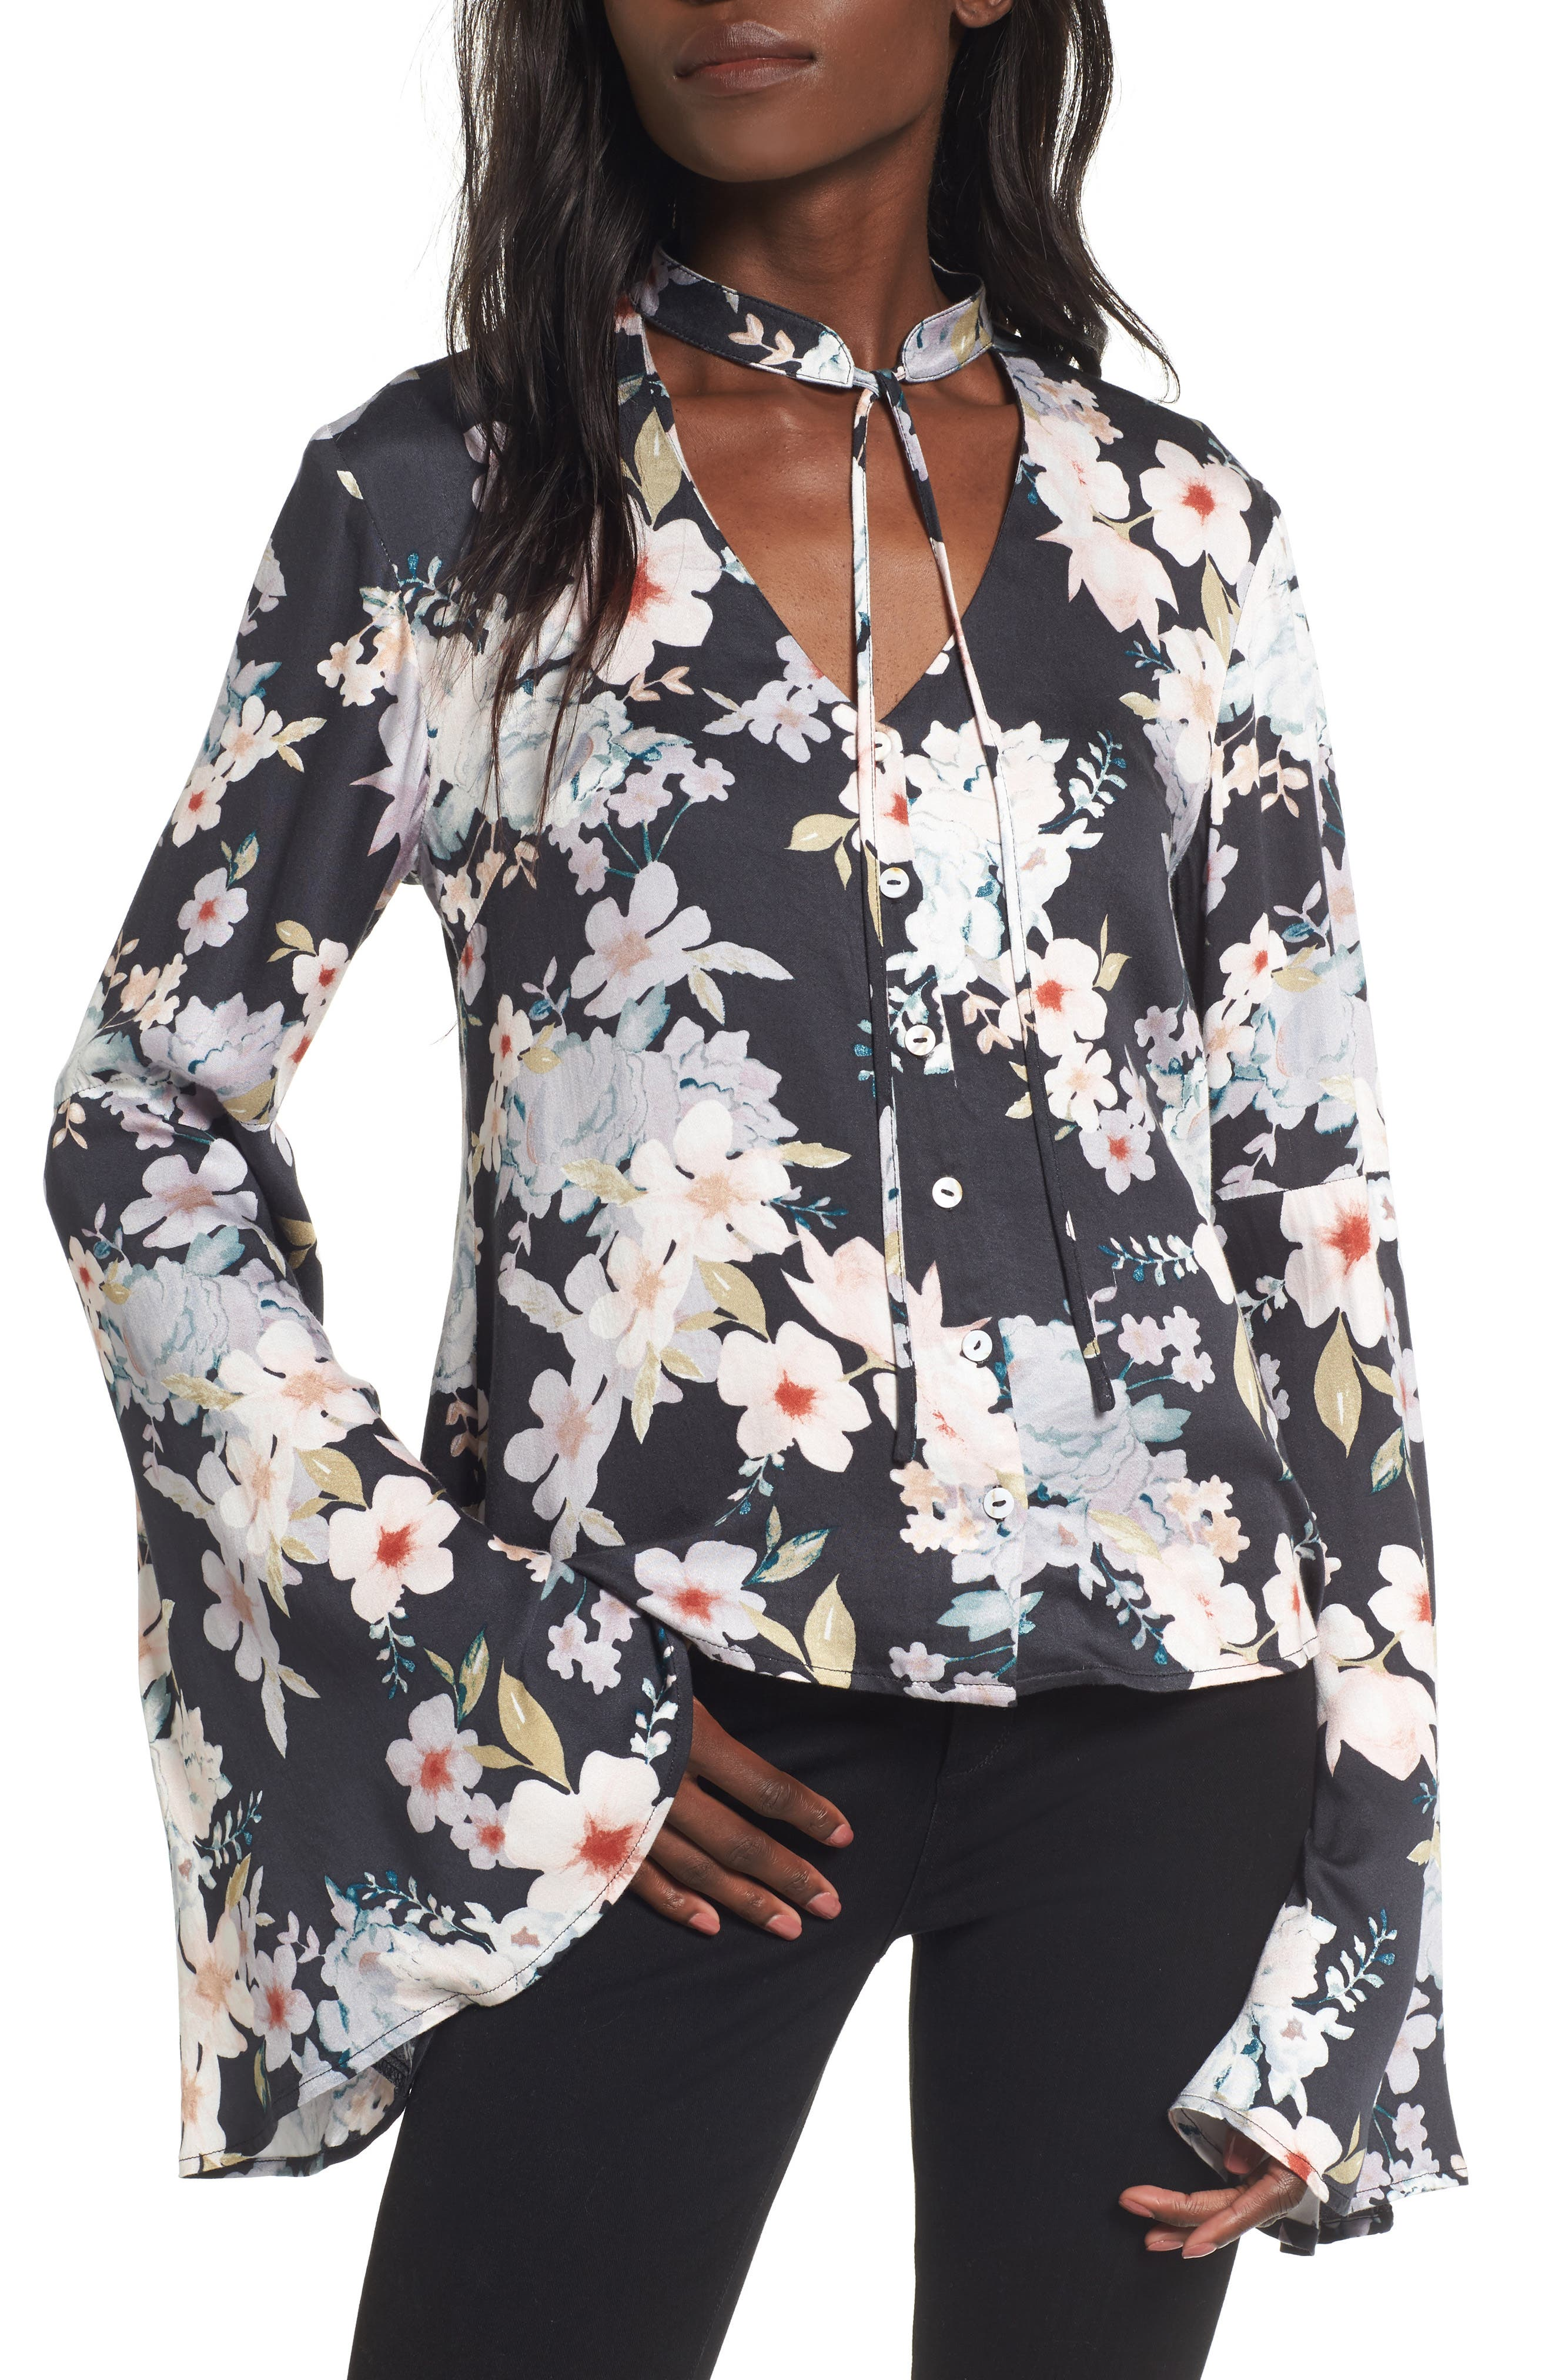 Main Image - Somedays Lovin Mystic Nights Floral Blouse